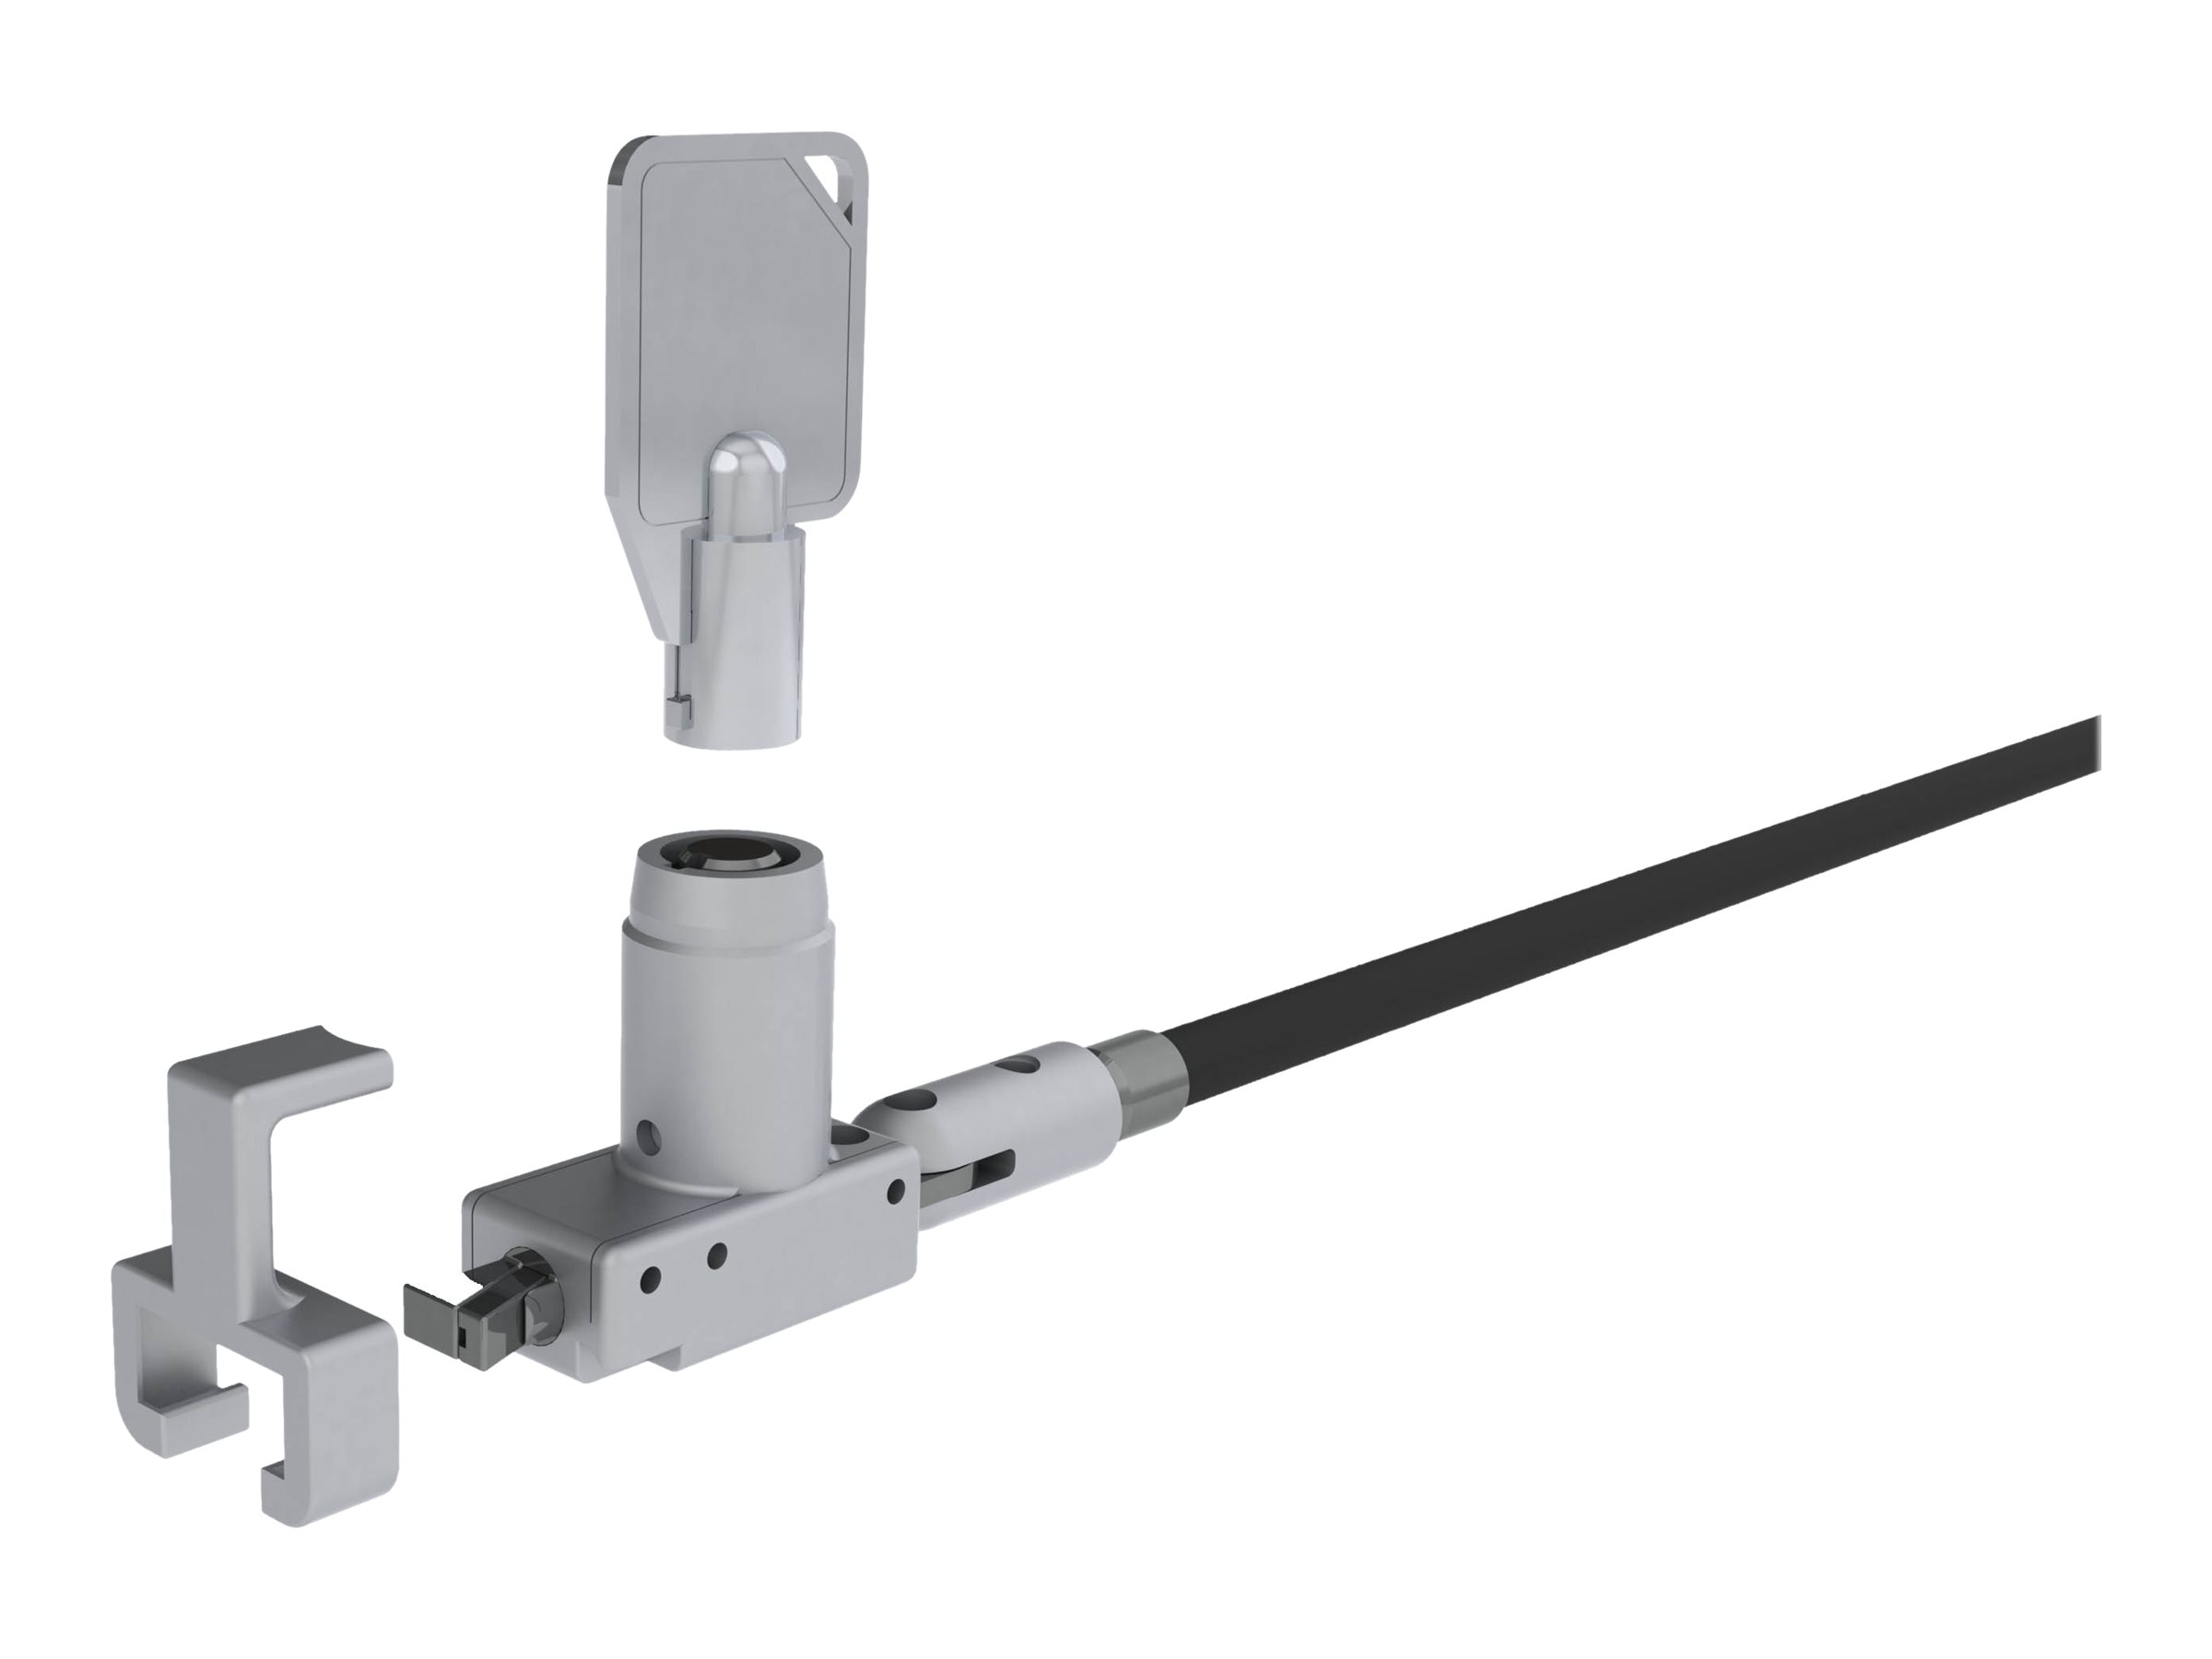 Noble TZ Wedge Low Profile system security kit